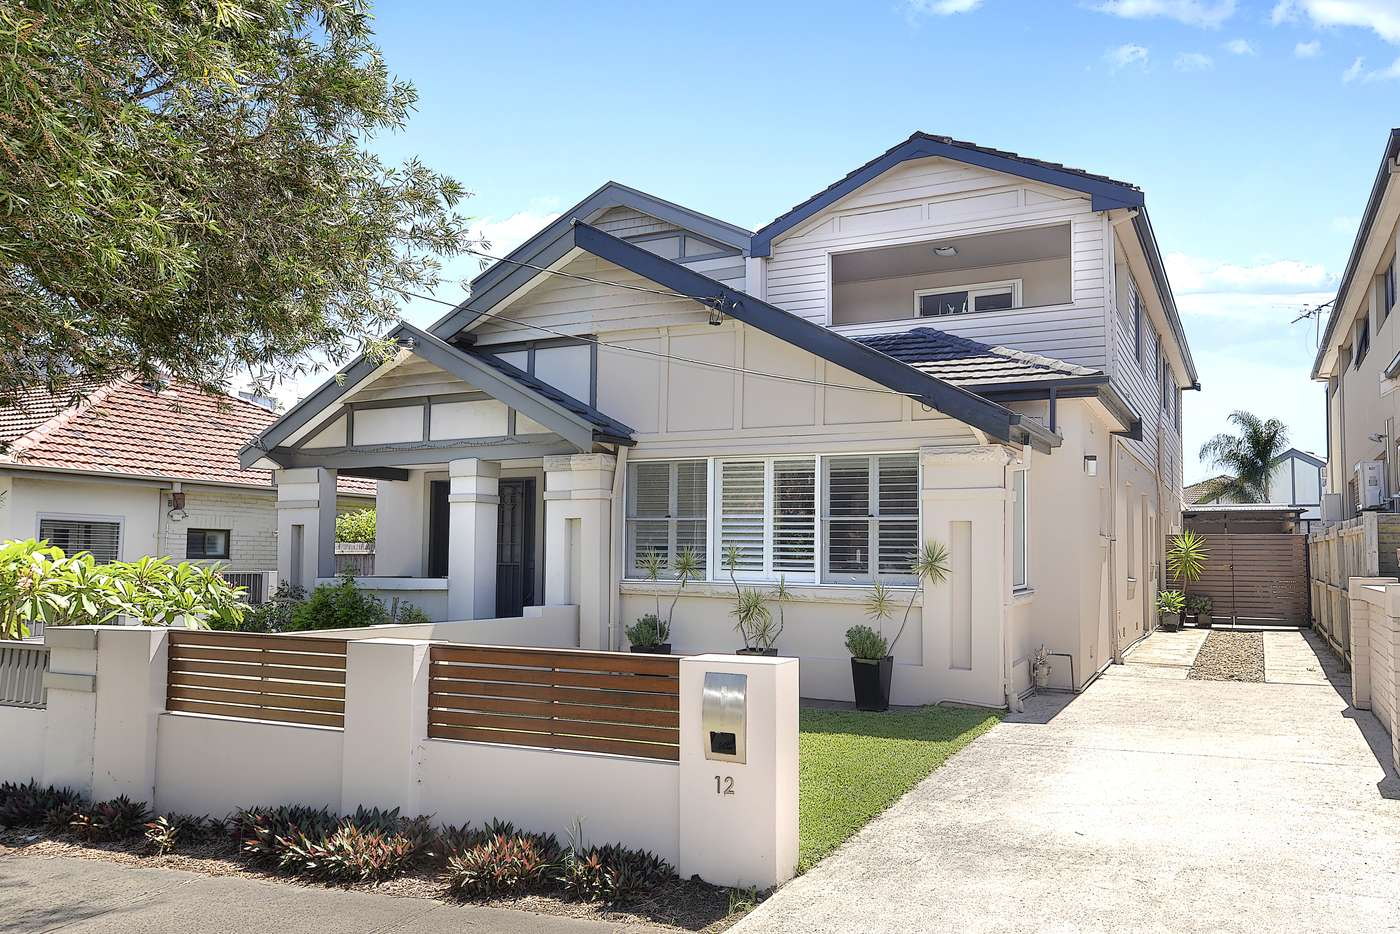 Main view of Homely house listing, 12 Kingsford Street, Maroubra NSW 2035